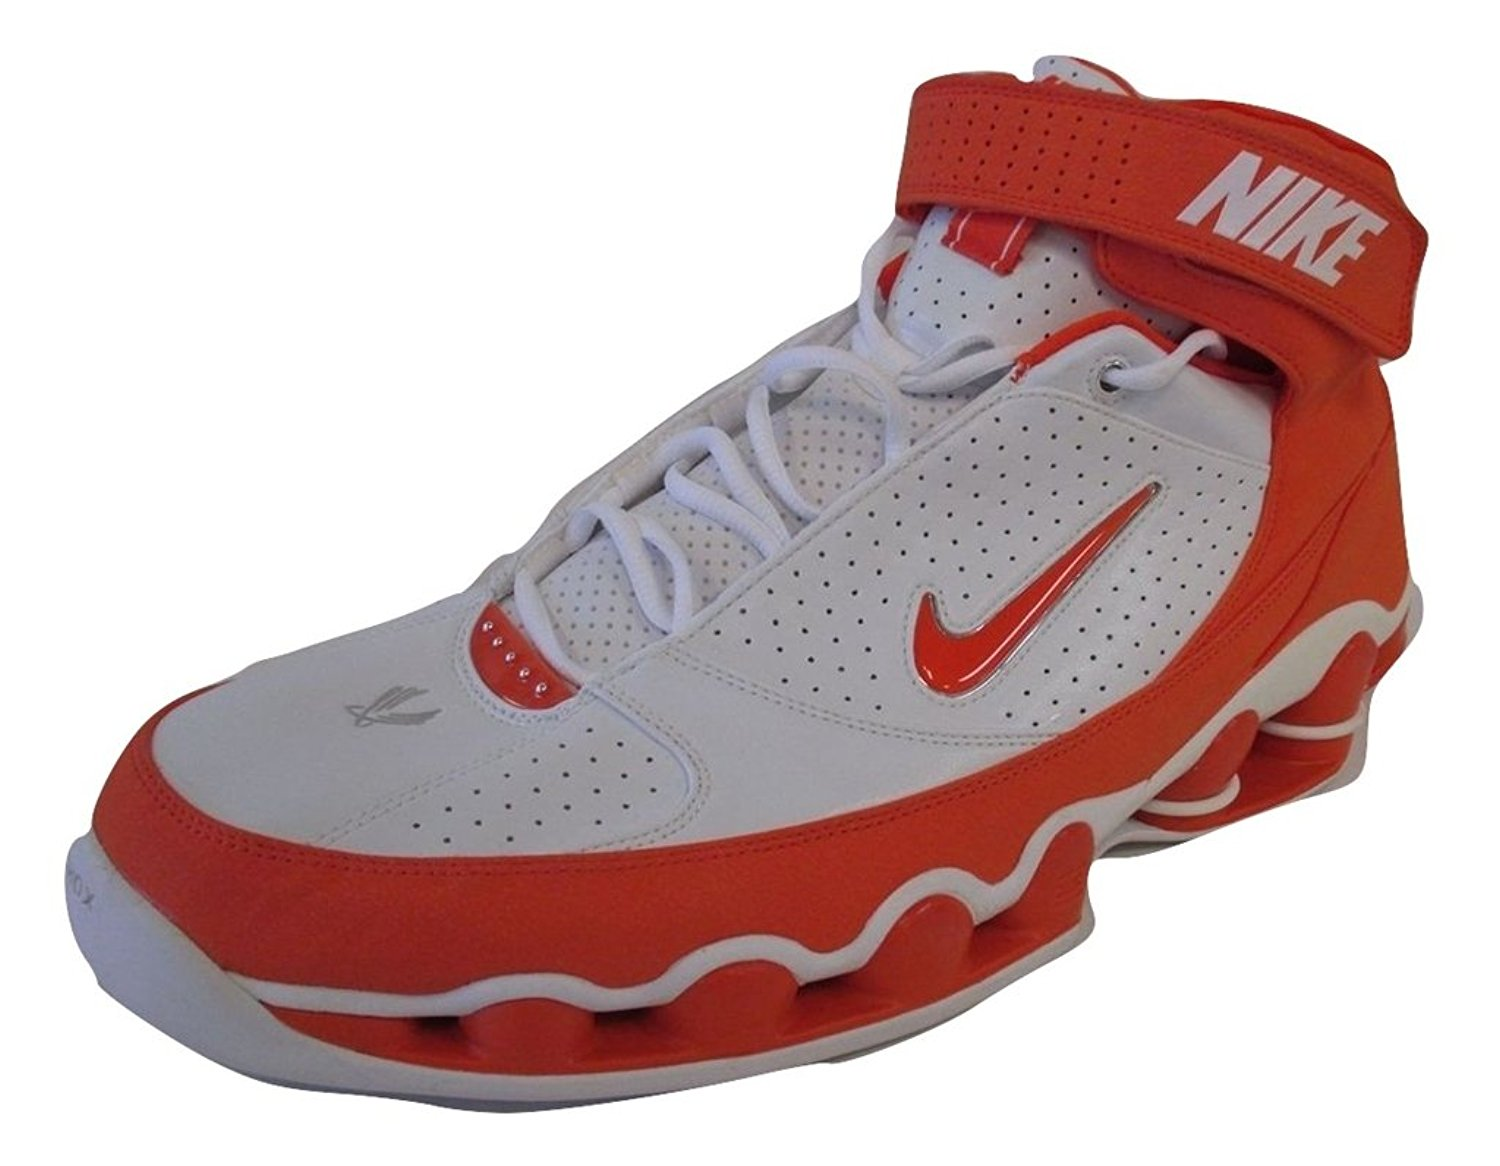 Nike Men's Shox Ups TB Basketball Shoes White/Safety Orange 17 ...